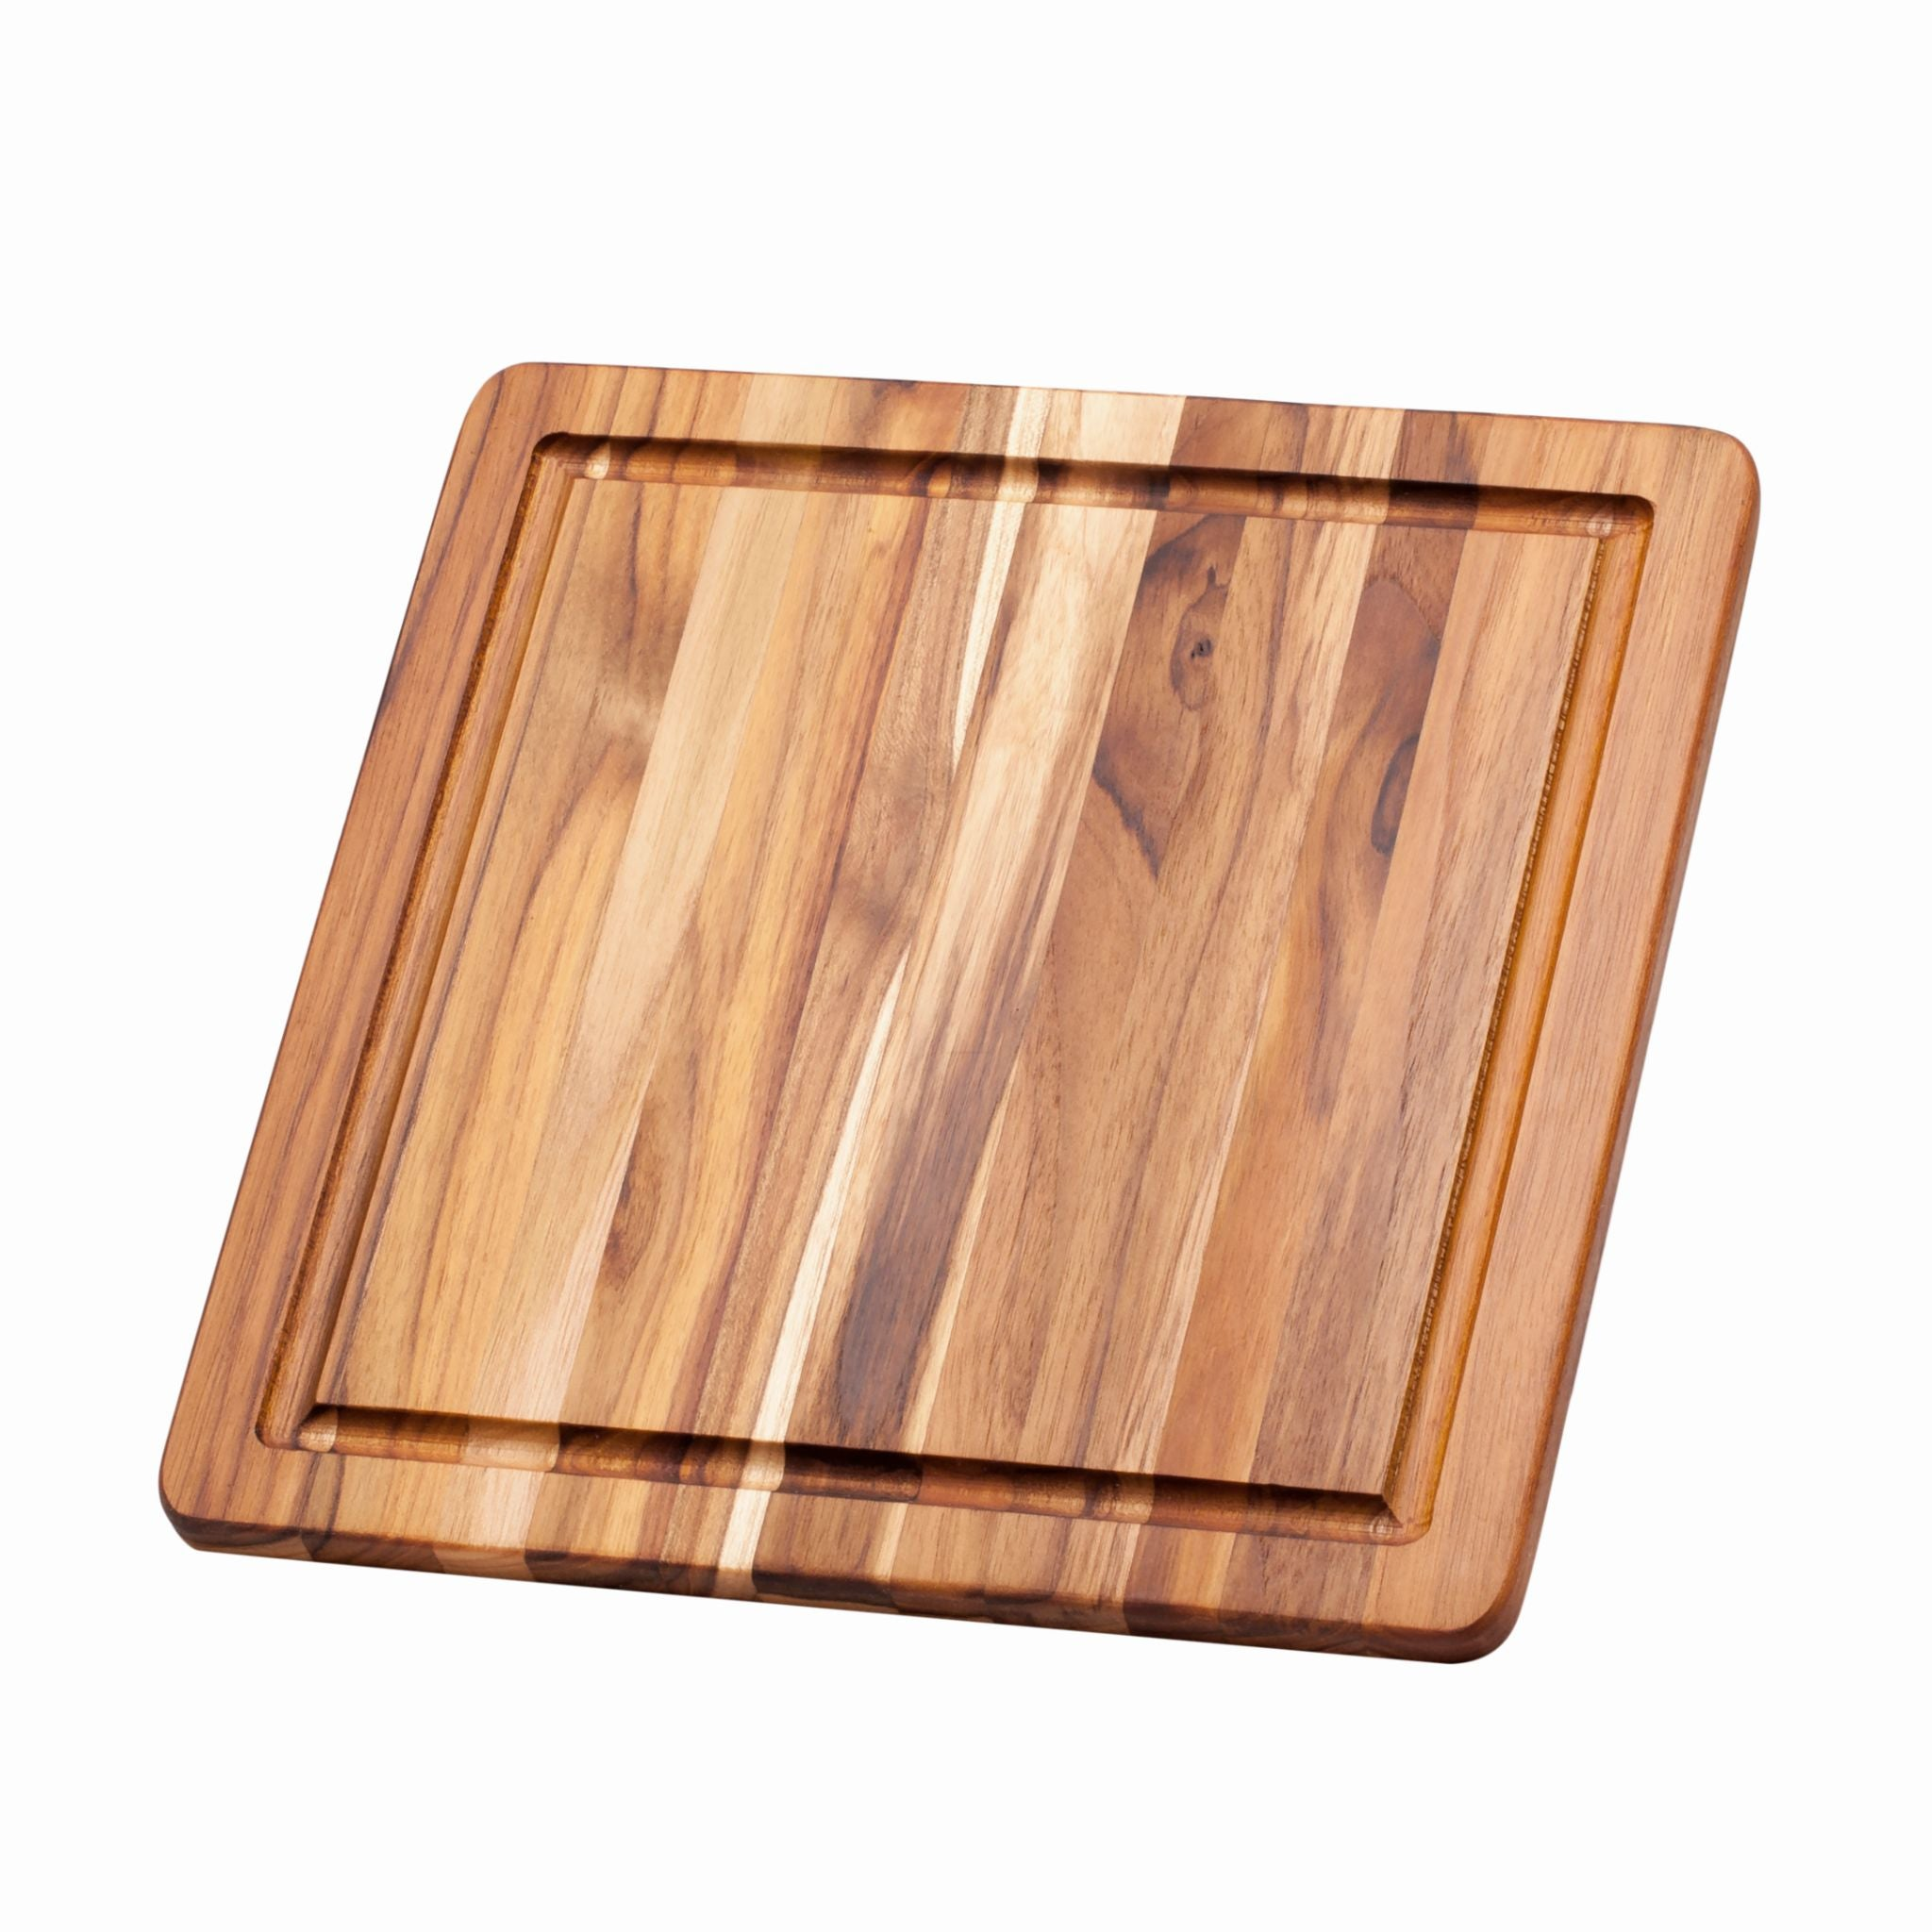 Teakhaus Square Cutting/Serving Board (30 x 30 x 1.4 cm)